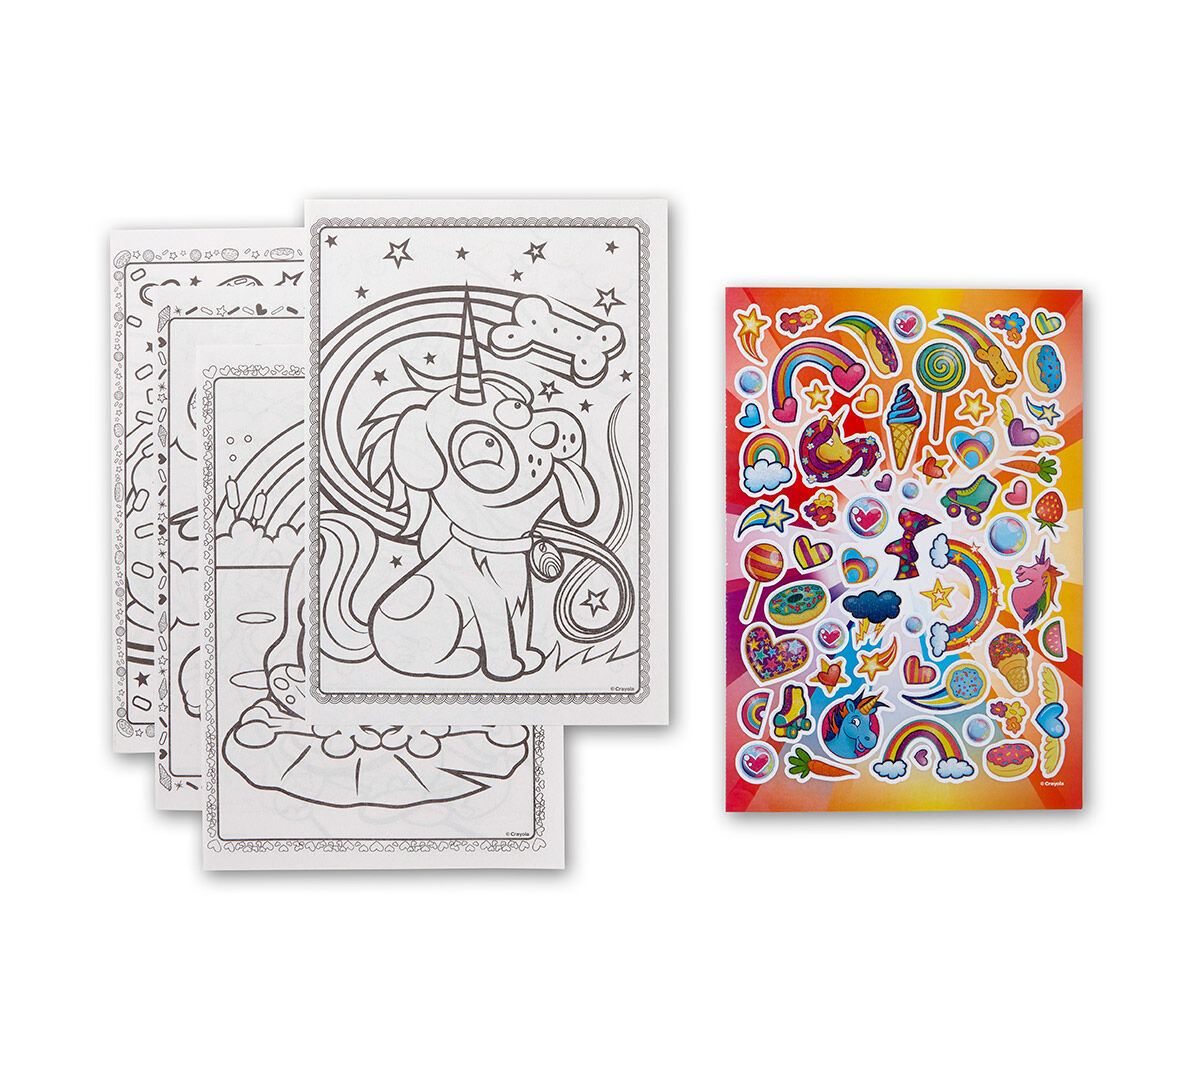 Uni-Creatures Coloring Book & Sticker Sheet